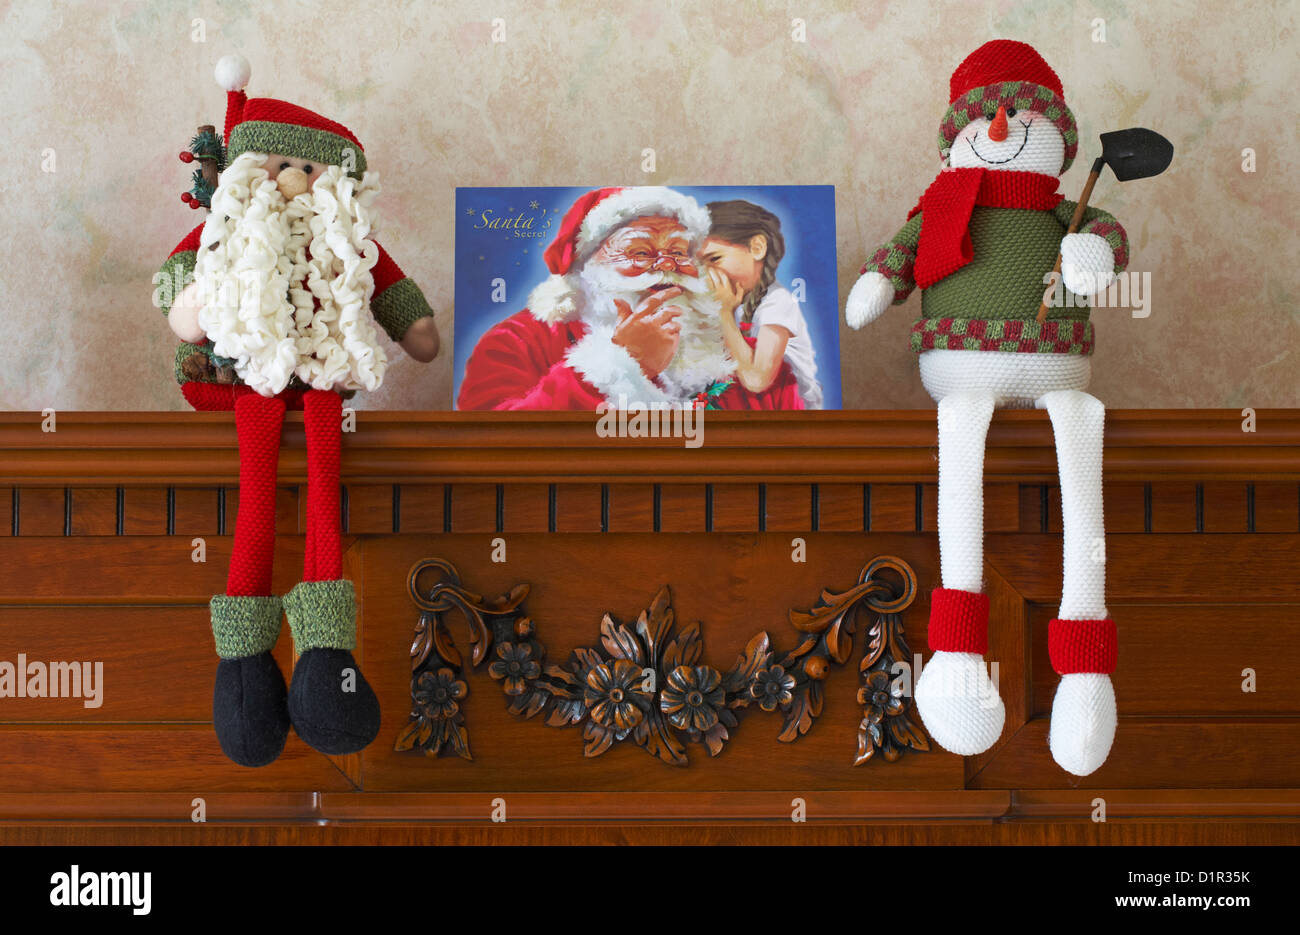 Christmas decorations and Christmas card on mantelpiece in lounge of ...